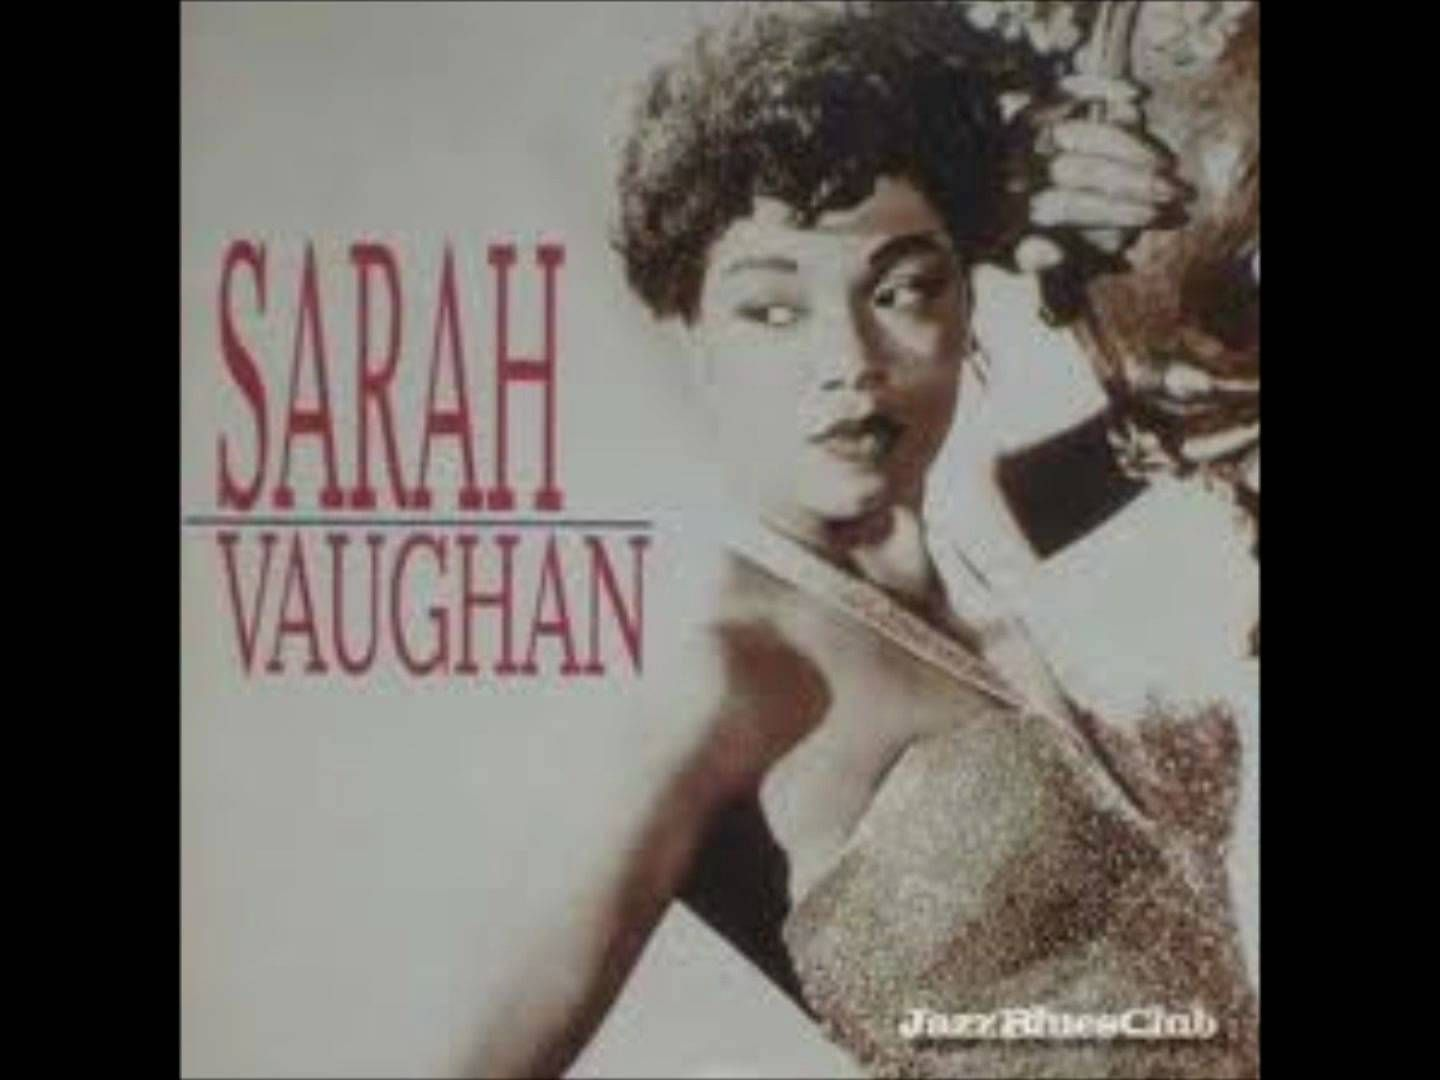 Sarah vaughan in a sentimental mood videos pinterest sarah vaughan in a sentimental mood stopboris Image collections